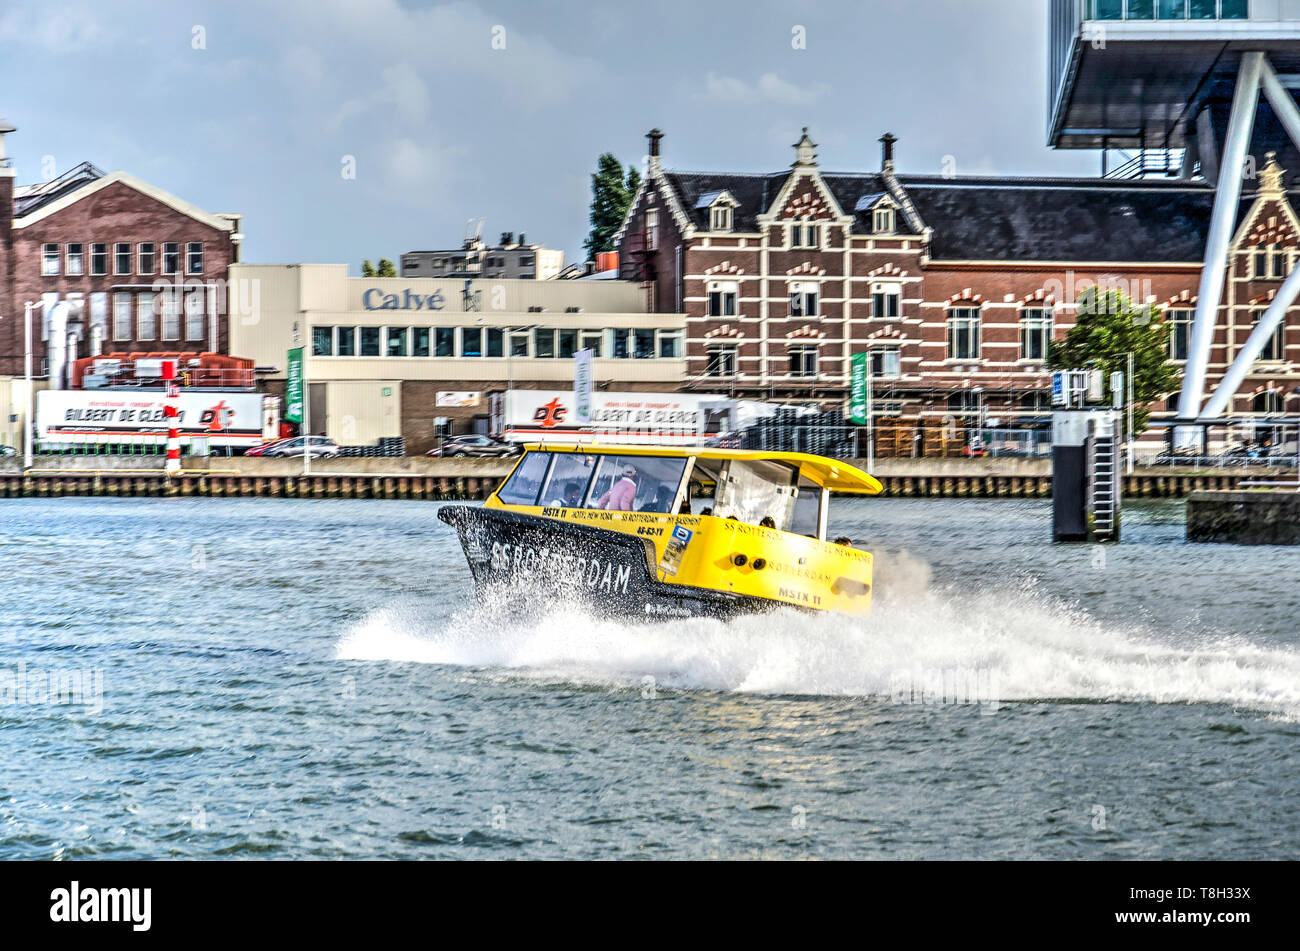 Rotterdam, The Netherlands, August 13, 2018: watertaxi on a curved trajectory on Nieuwe Maas river near Calve factory and Unilever office - Stock Image